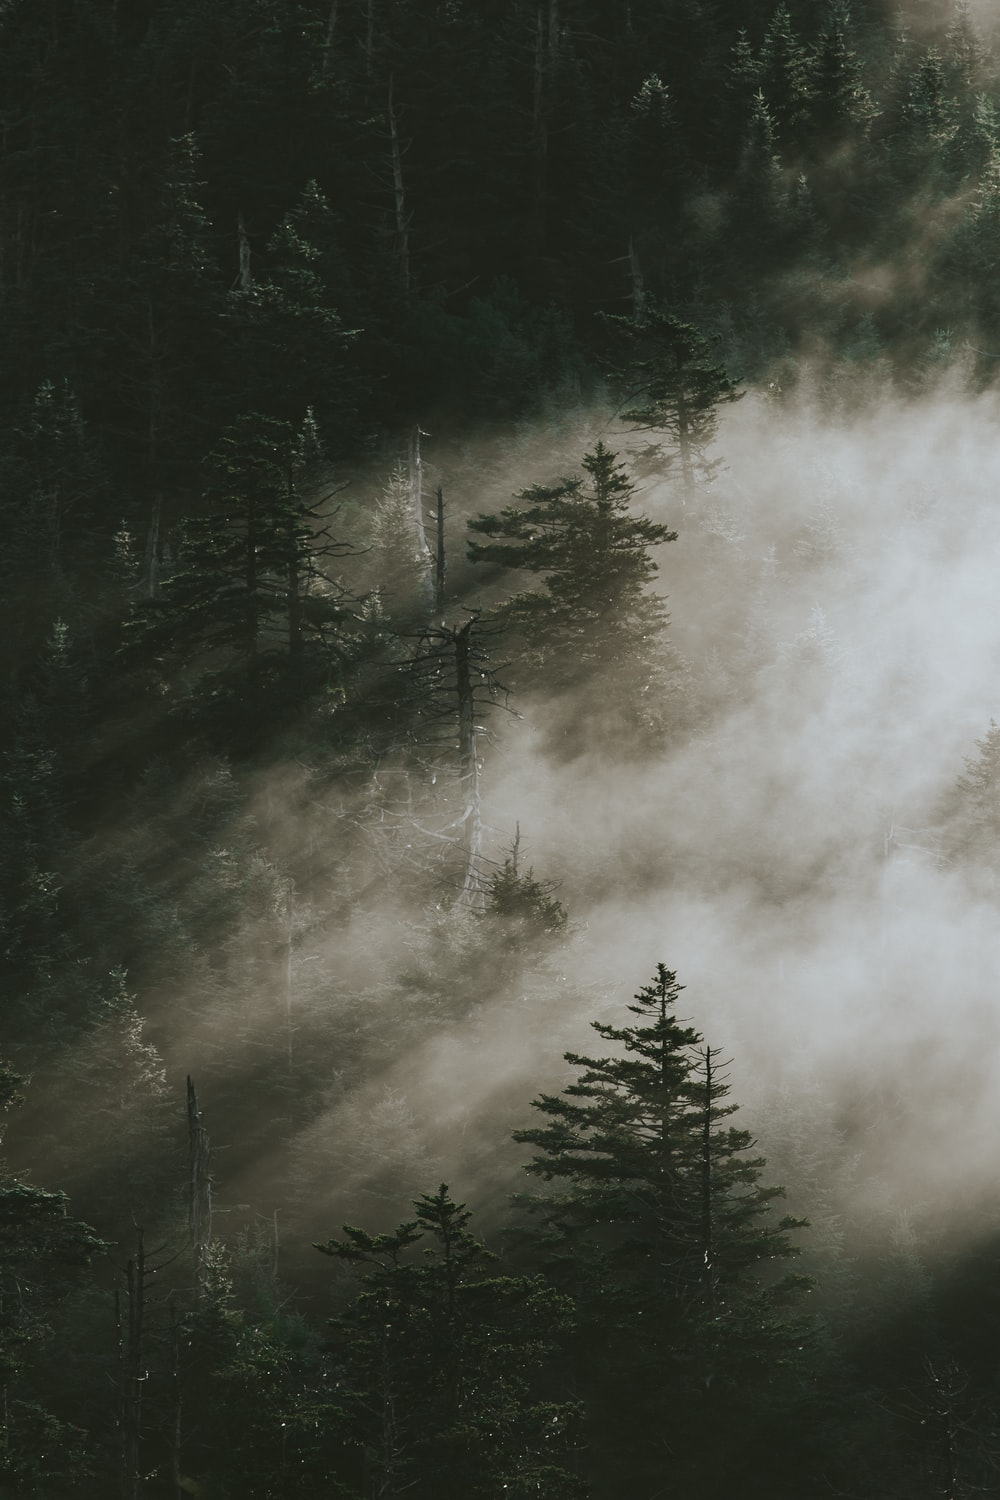 pine trees surrounded by fogs